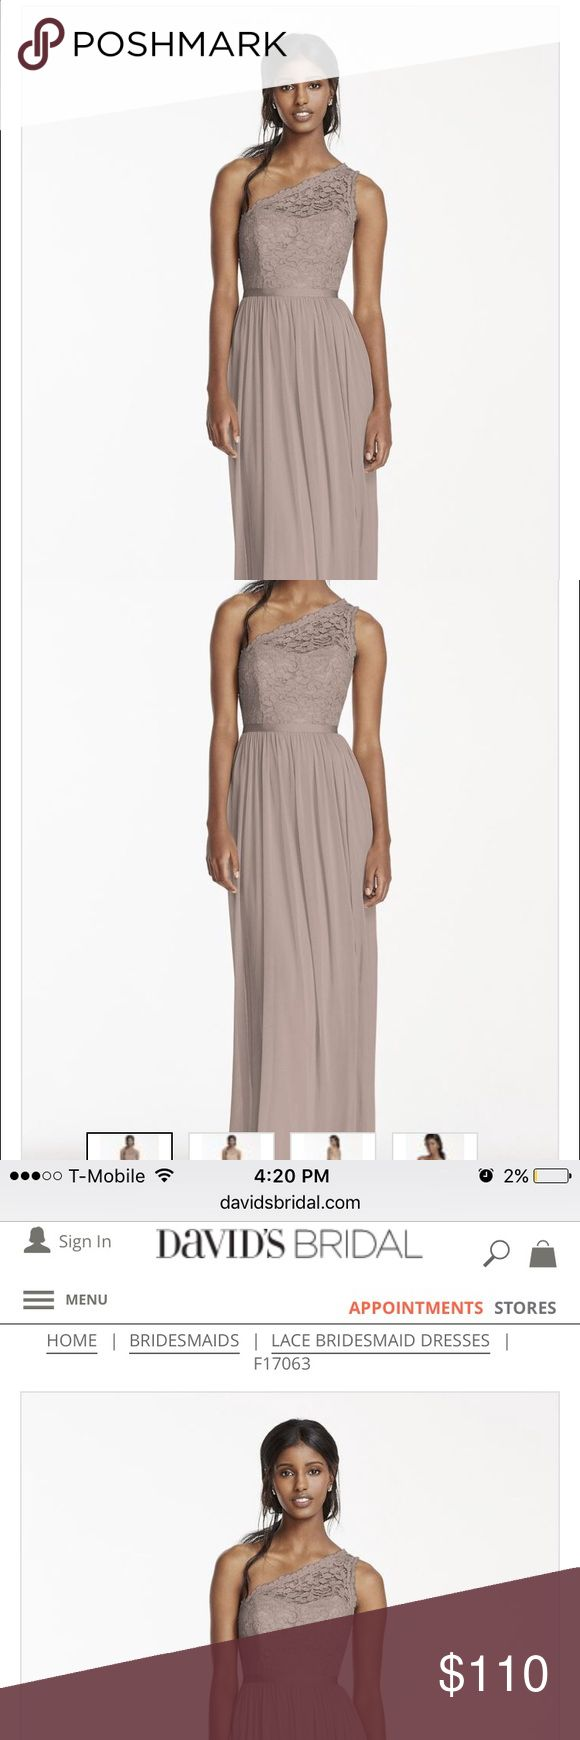 Best 25 used bridesmaid dresses ideas on pinterest blue sequin best 25 used bridesmaid dresses ideas on pinterest blue sequin dress bridesmaid gifts for bride and navy bridal parties ombrellifo Images